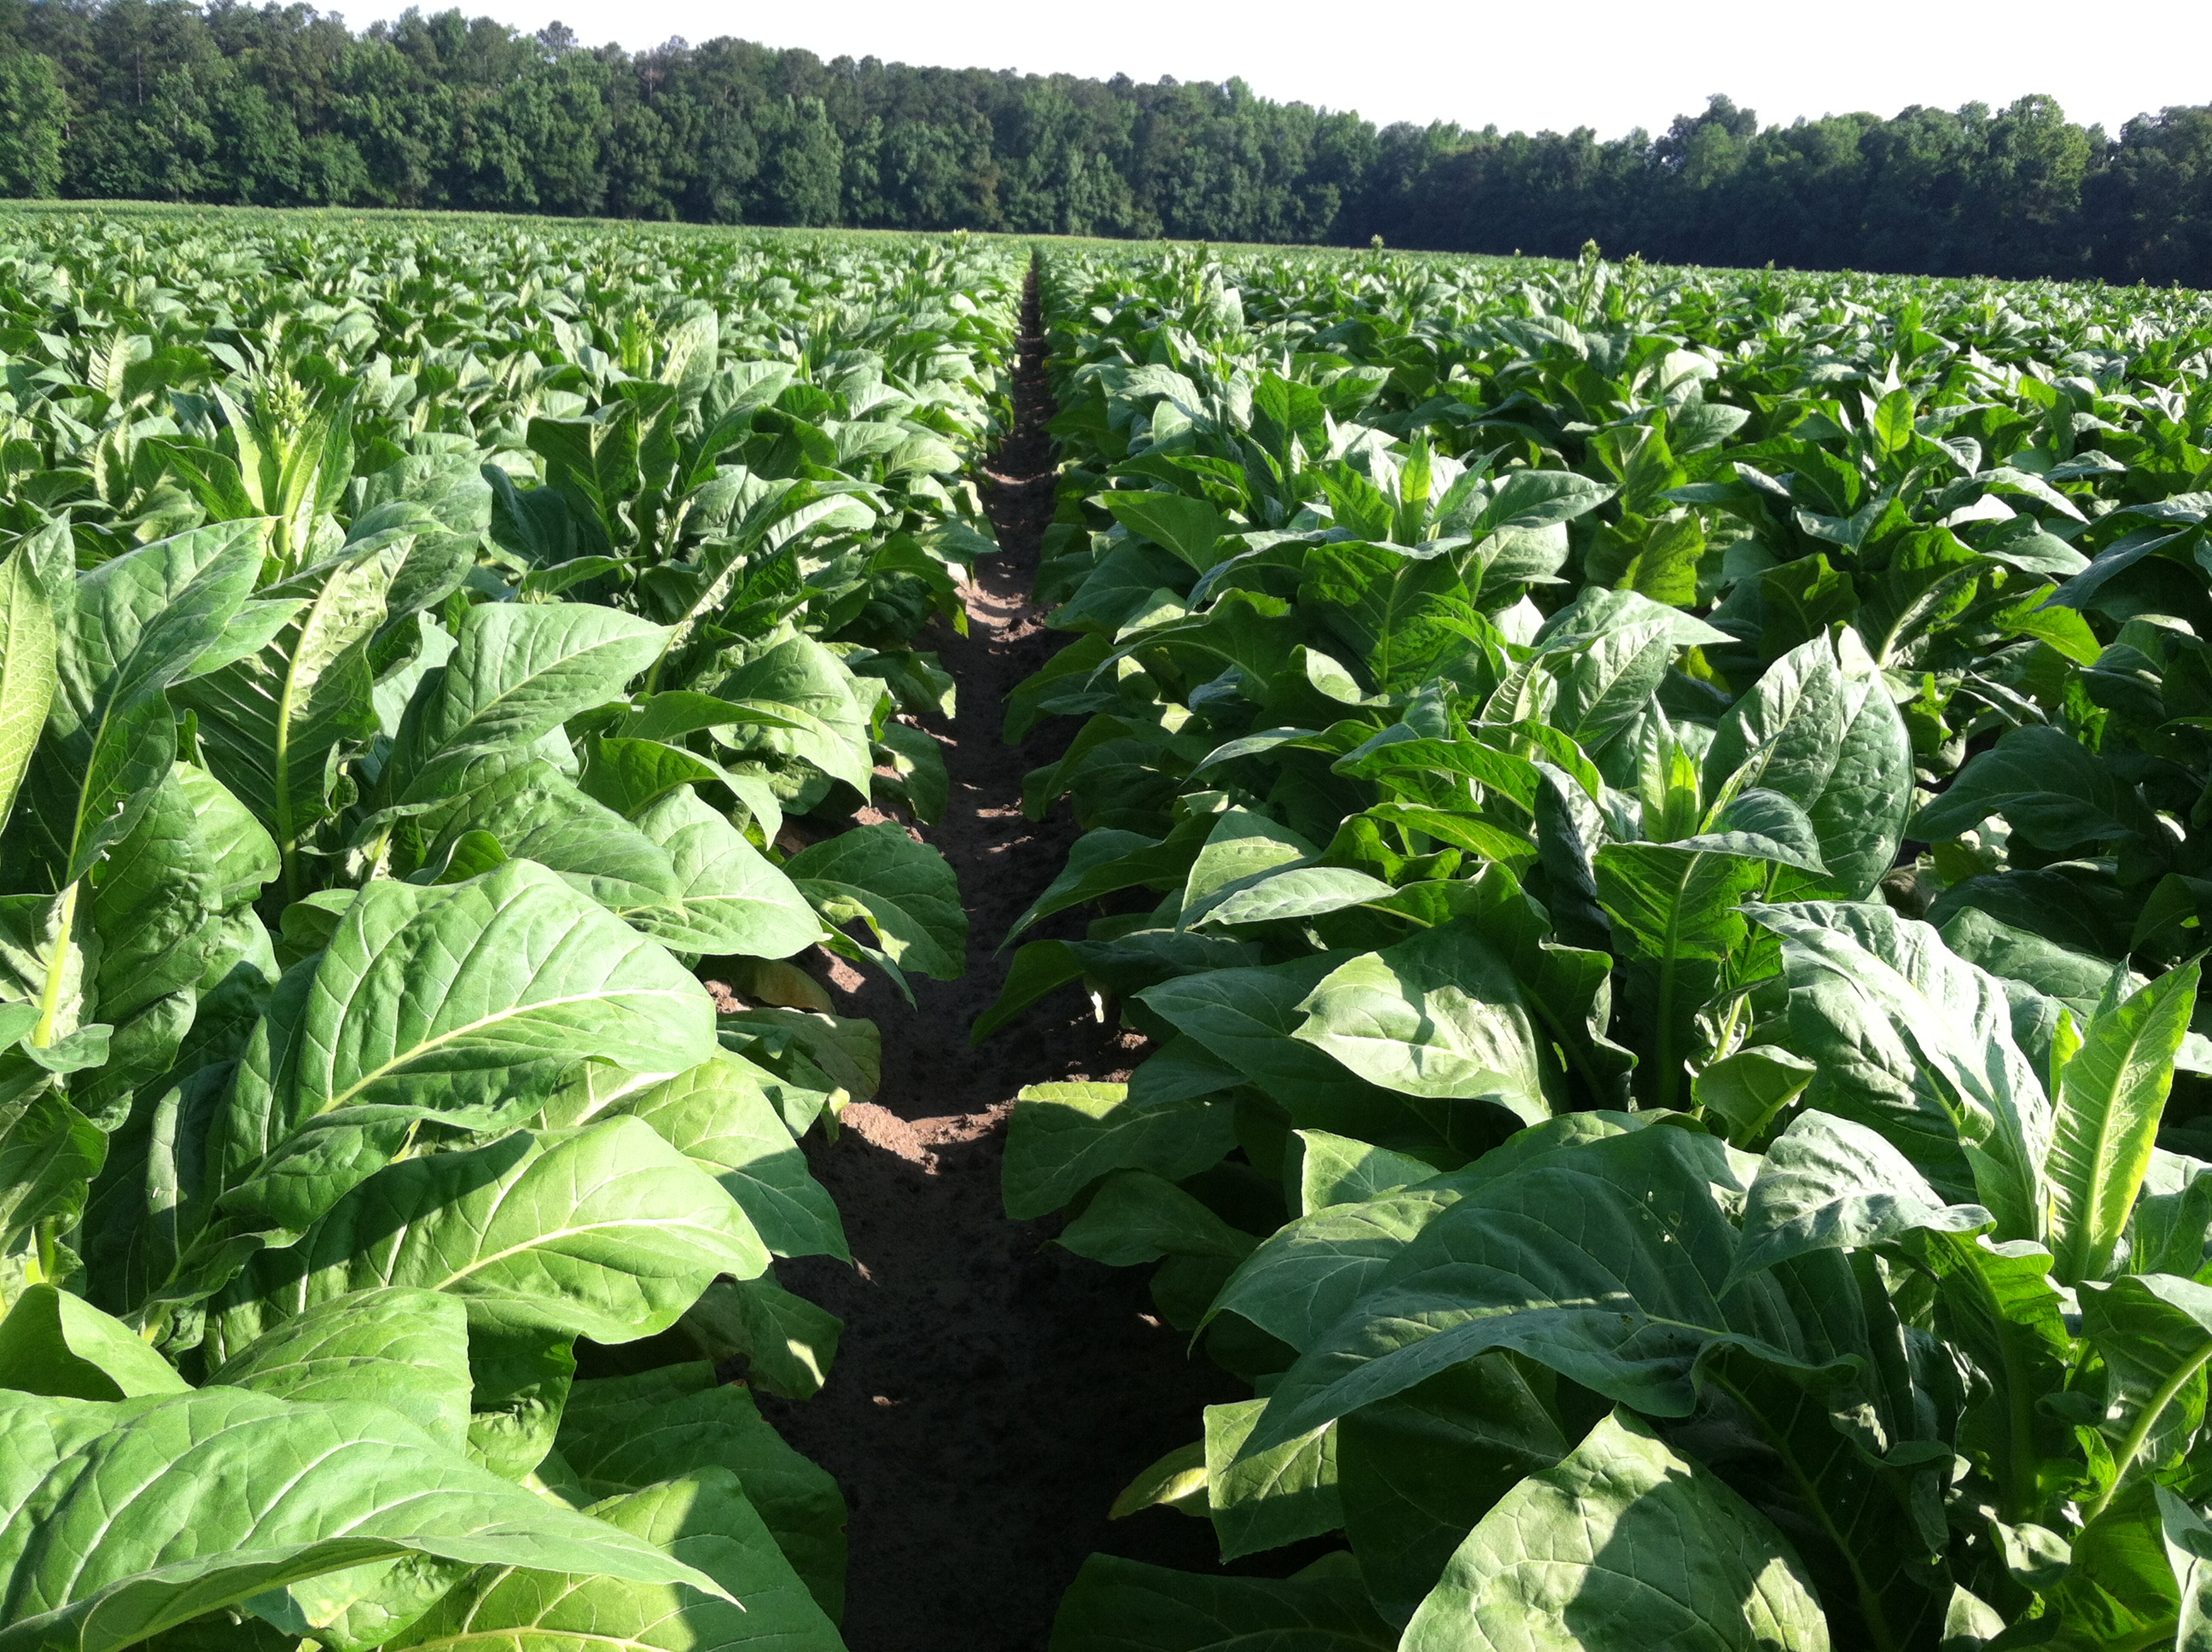 Tobacco Field June 20, 2014